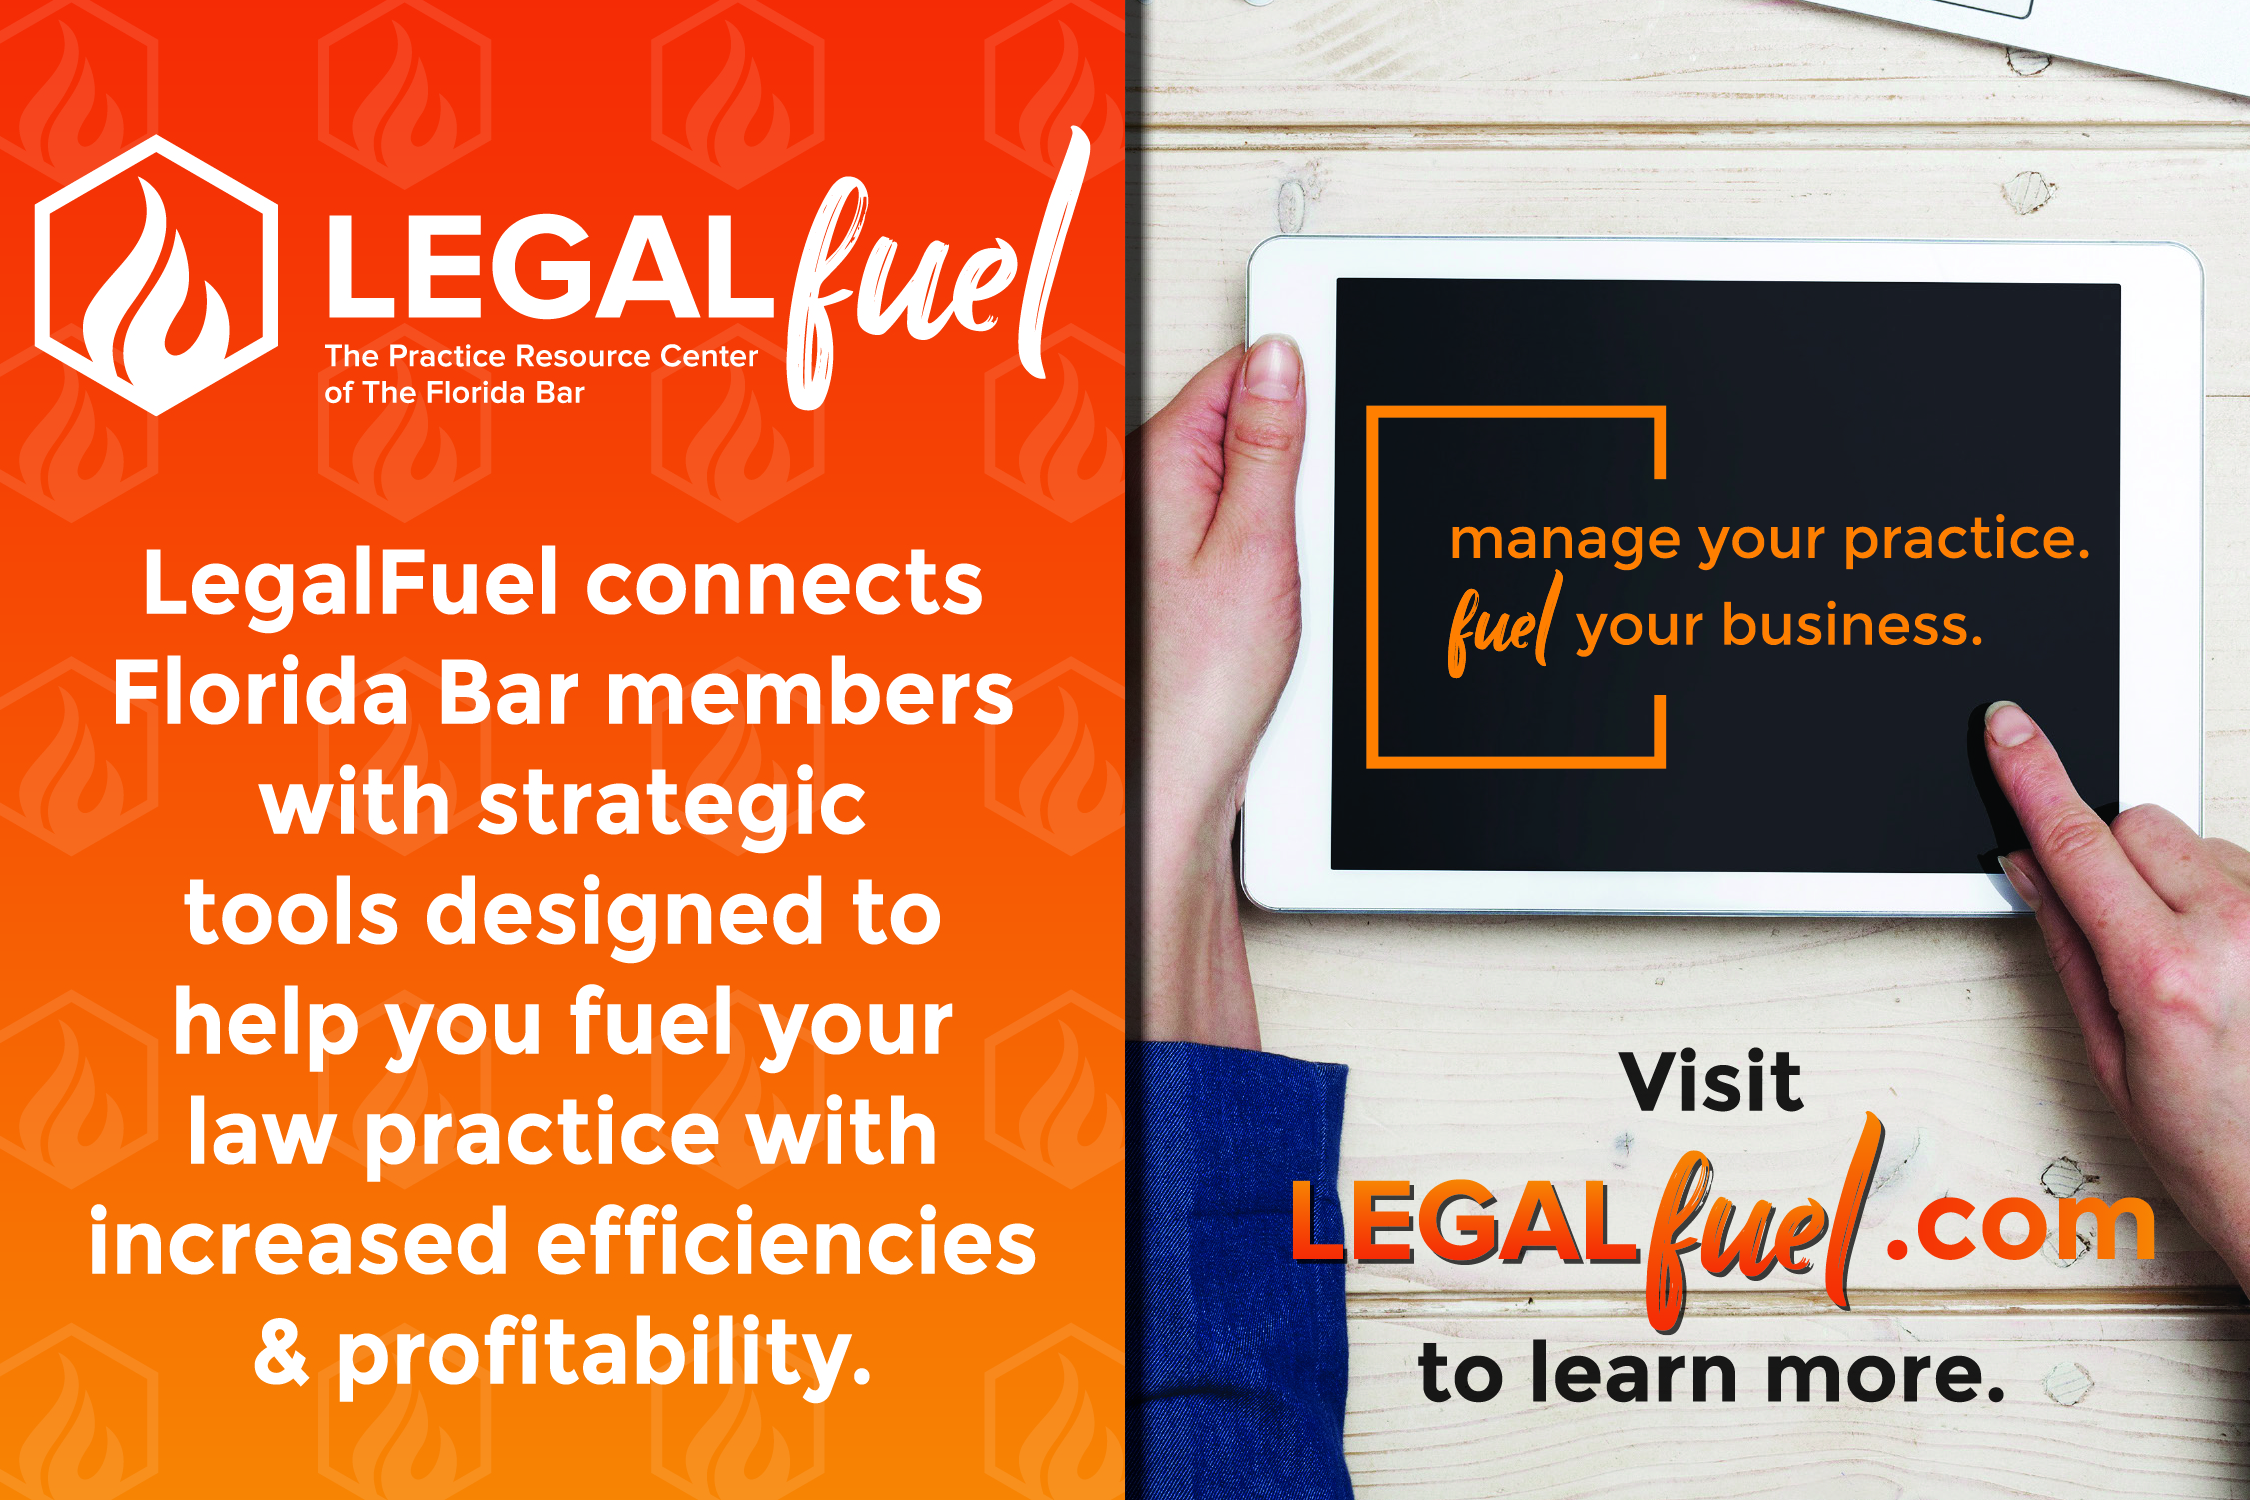 The New LegalFuel: The Practice Resource Center of The Florida Bar Is Launched